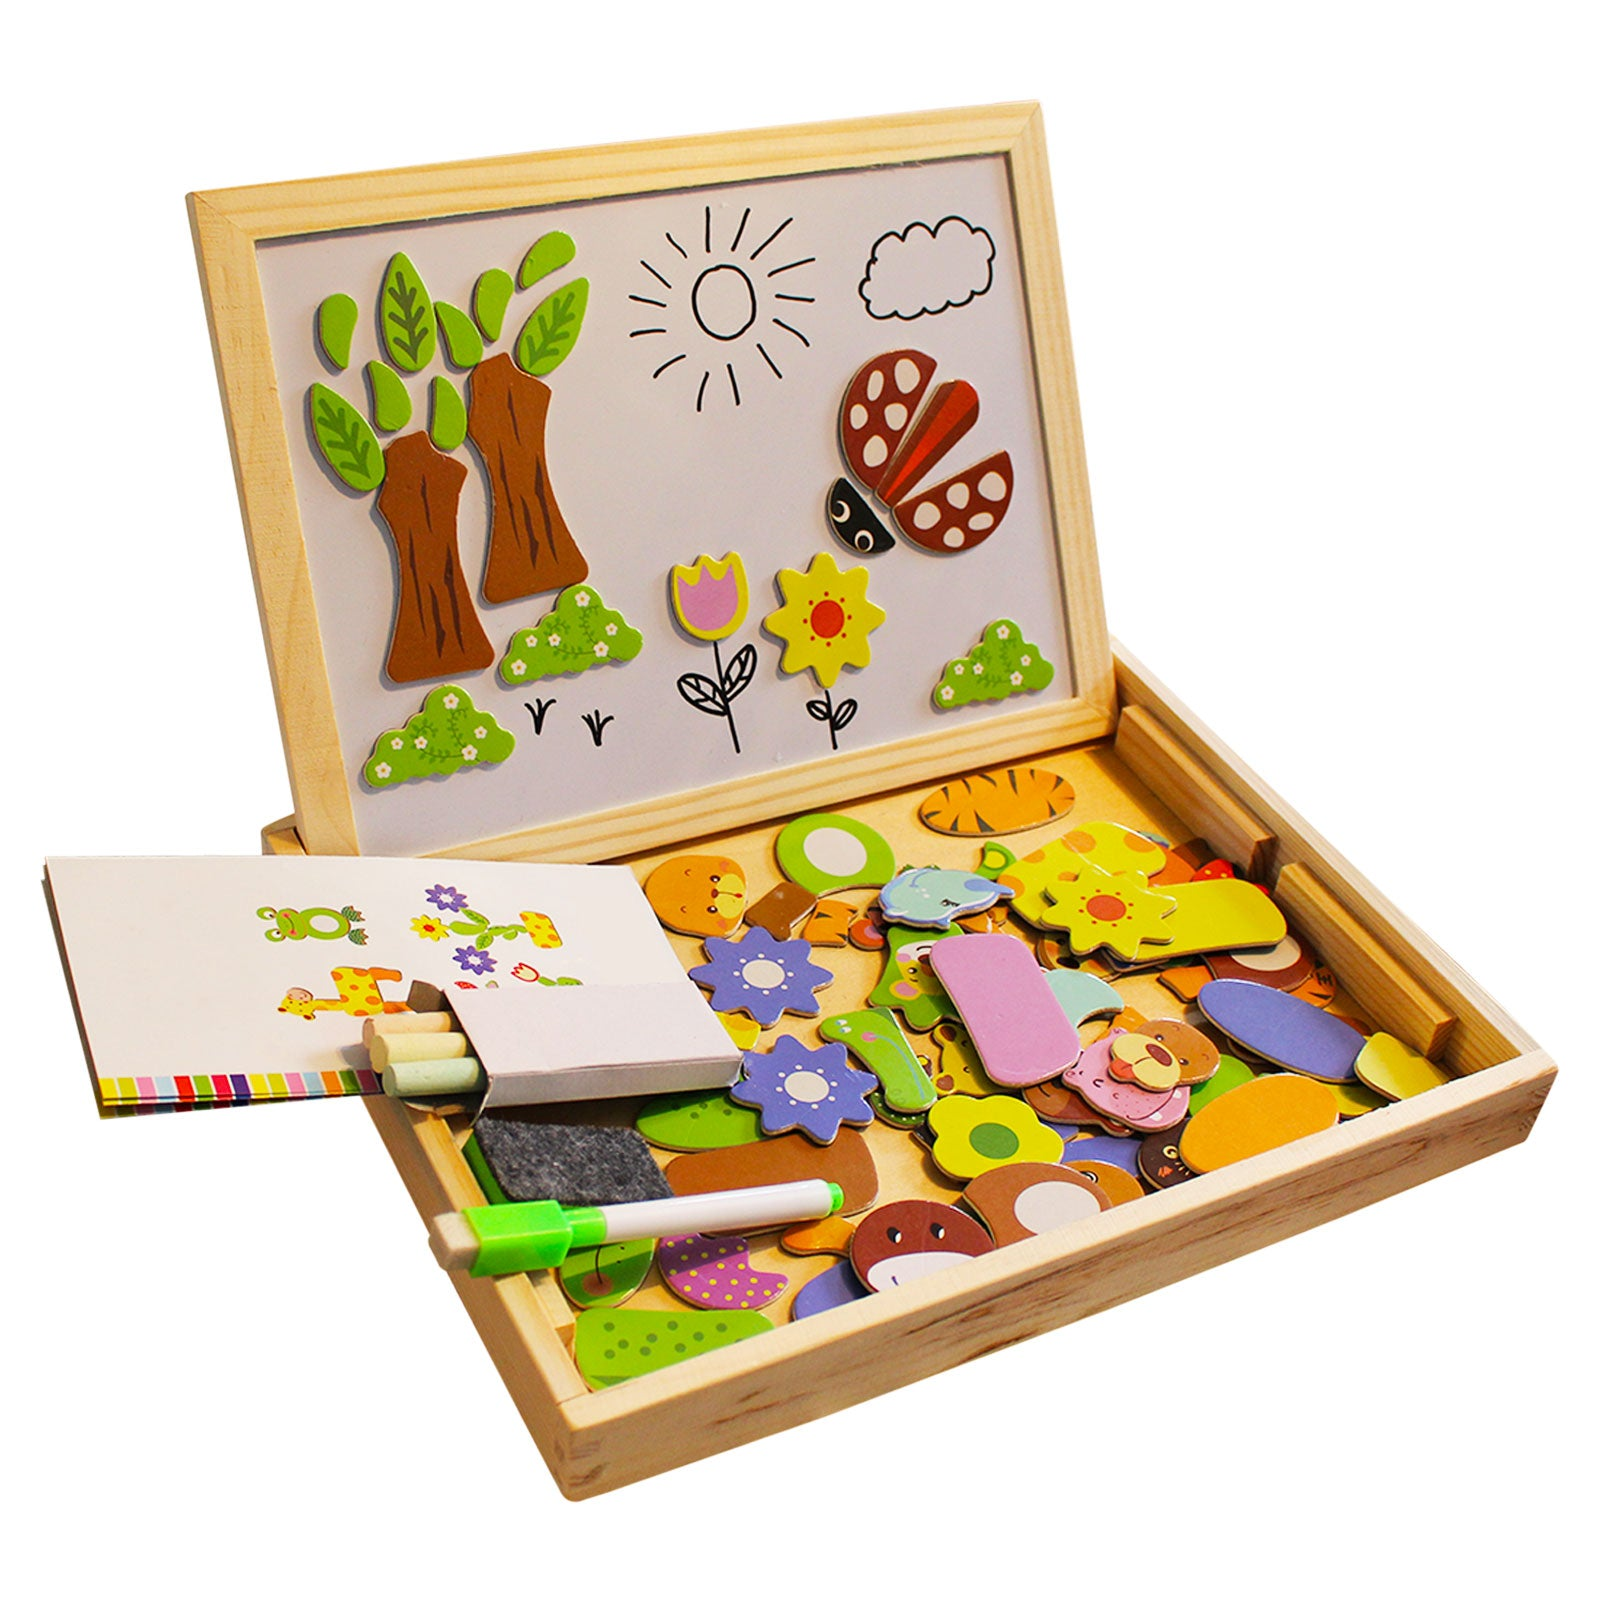 Kurtzy Jigsaw Puzzles 110 Pieces Of Wooden Magnetic Board Puzzles